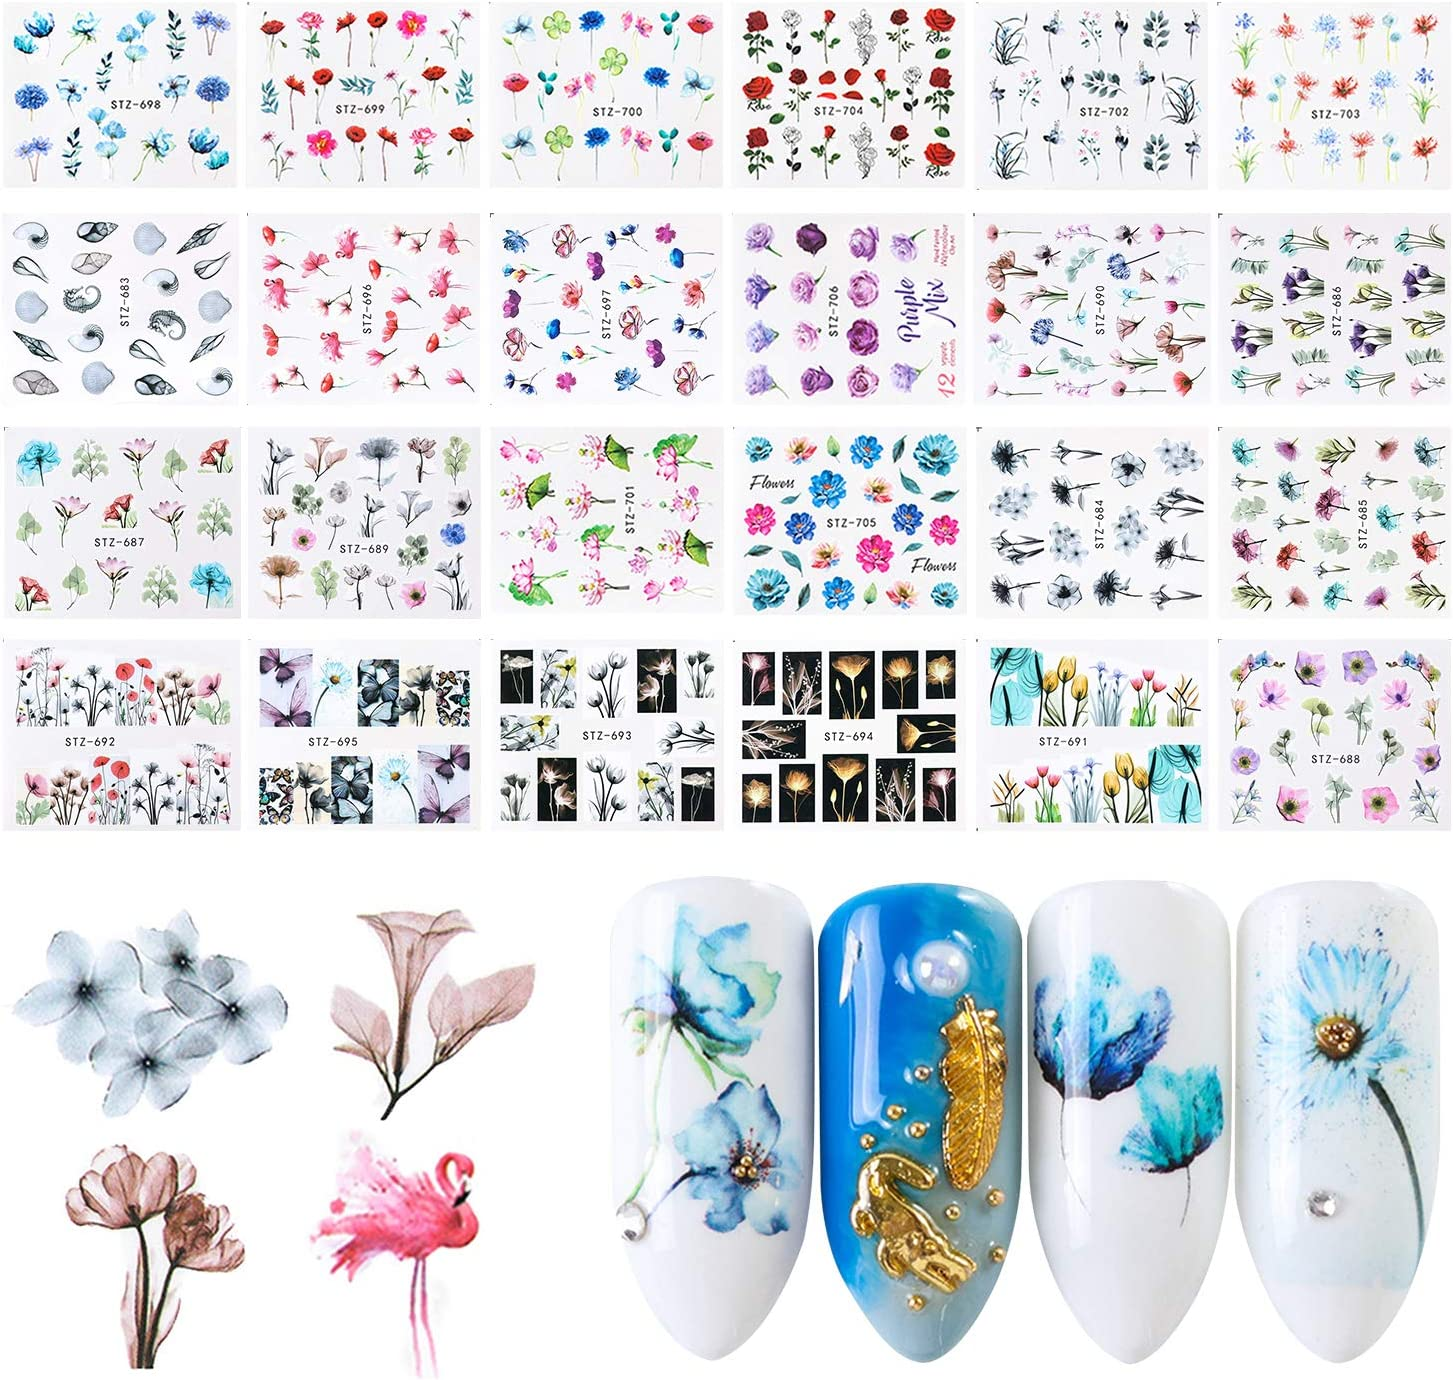 Nail Art Stickers, FunPa 24 Sheets Nail Stickers Floral Pattern Water Transfer DIY Nail Decals Self-Adhesive Stickers for Women Girls Nail Art Accessories Decals Manicure DIY or Nail Salon: Arts, Crafts & Sewing